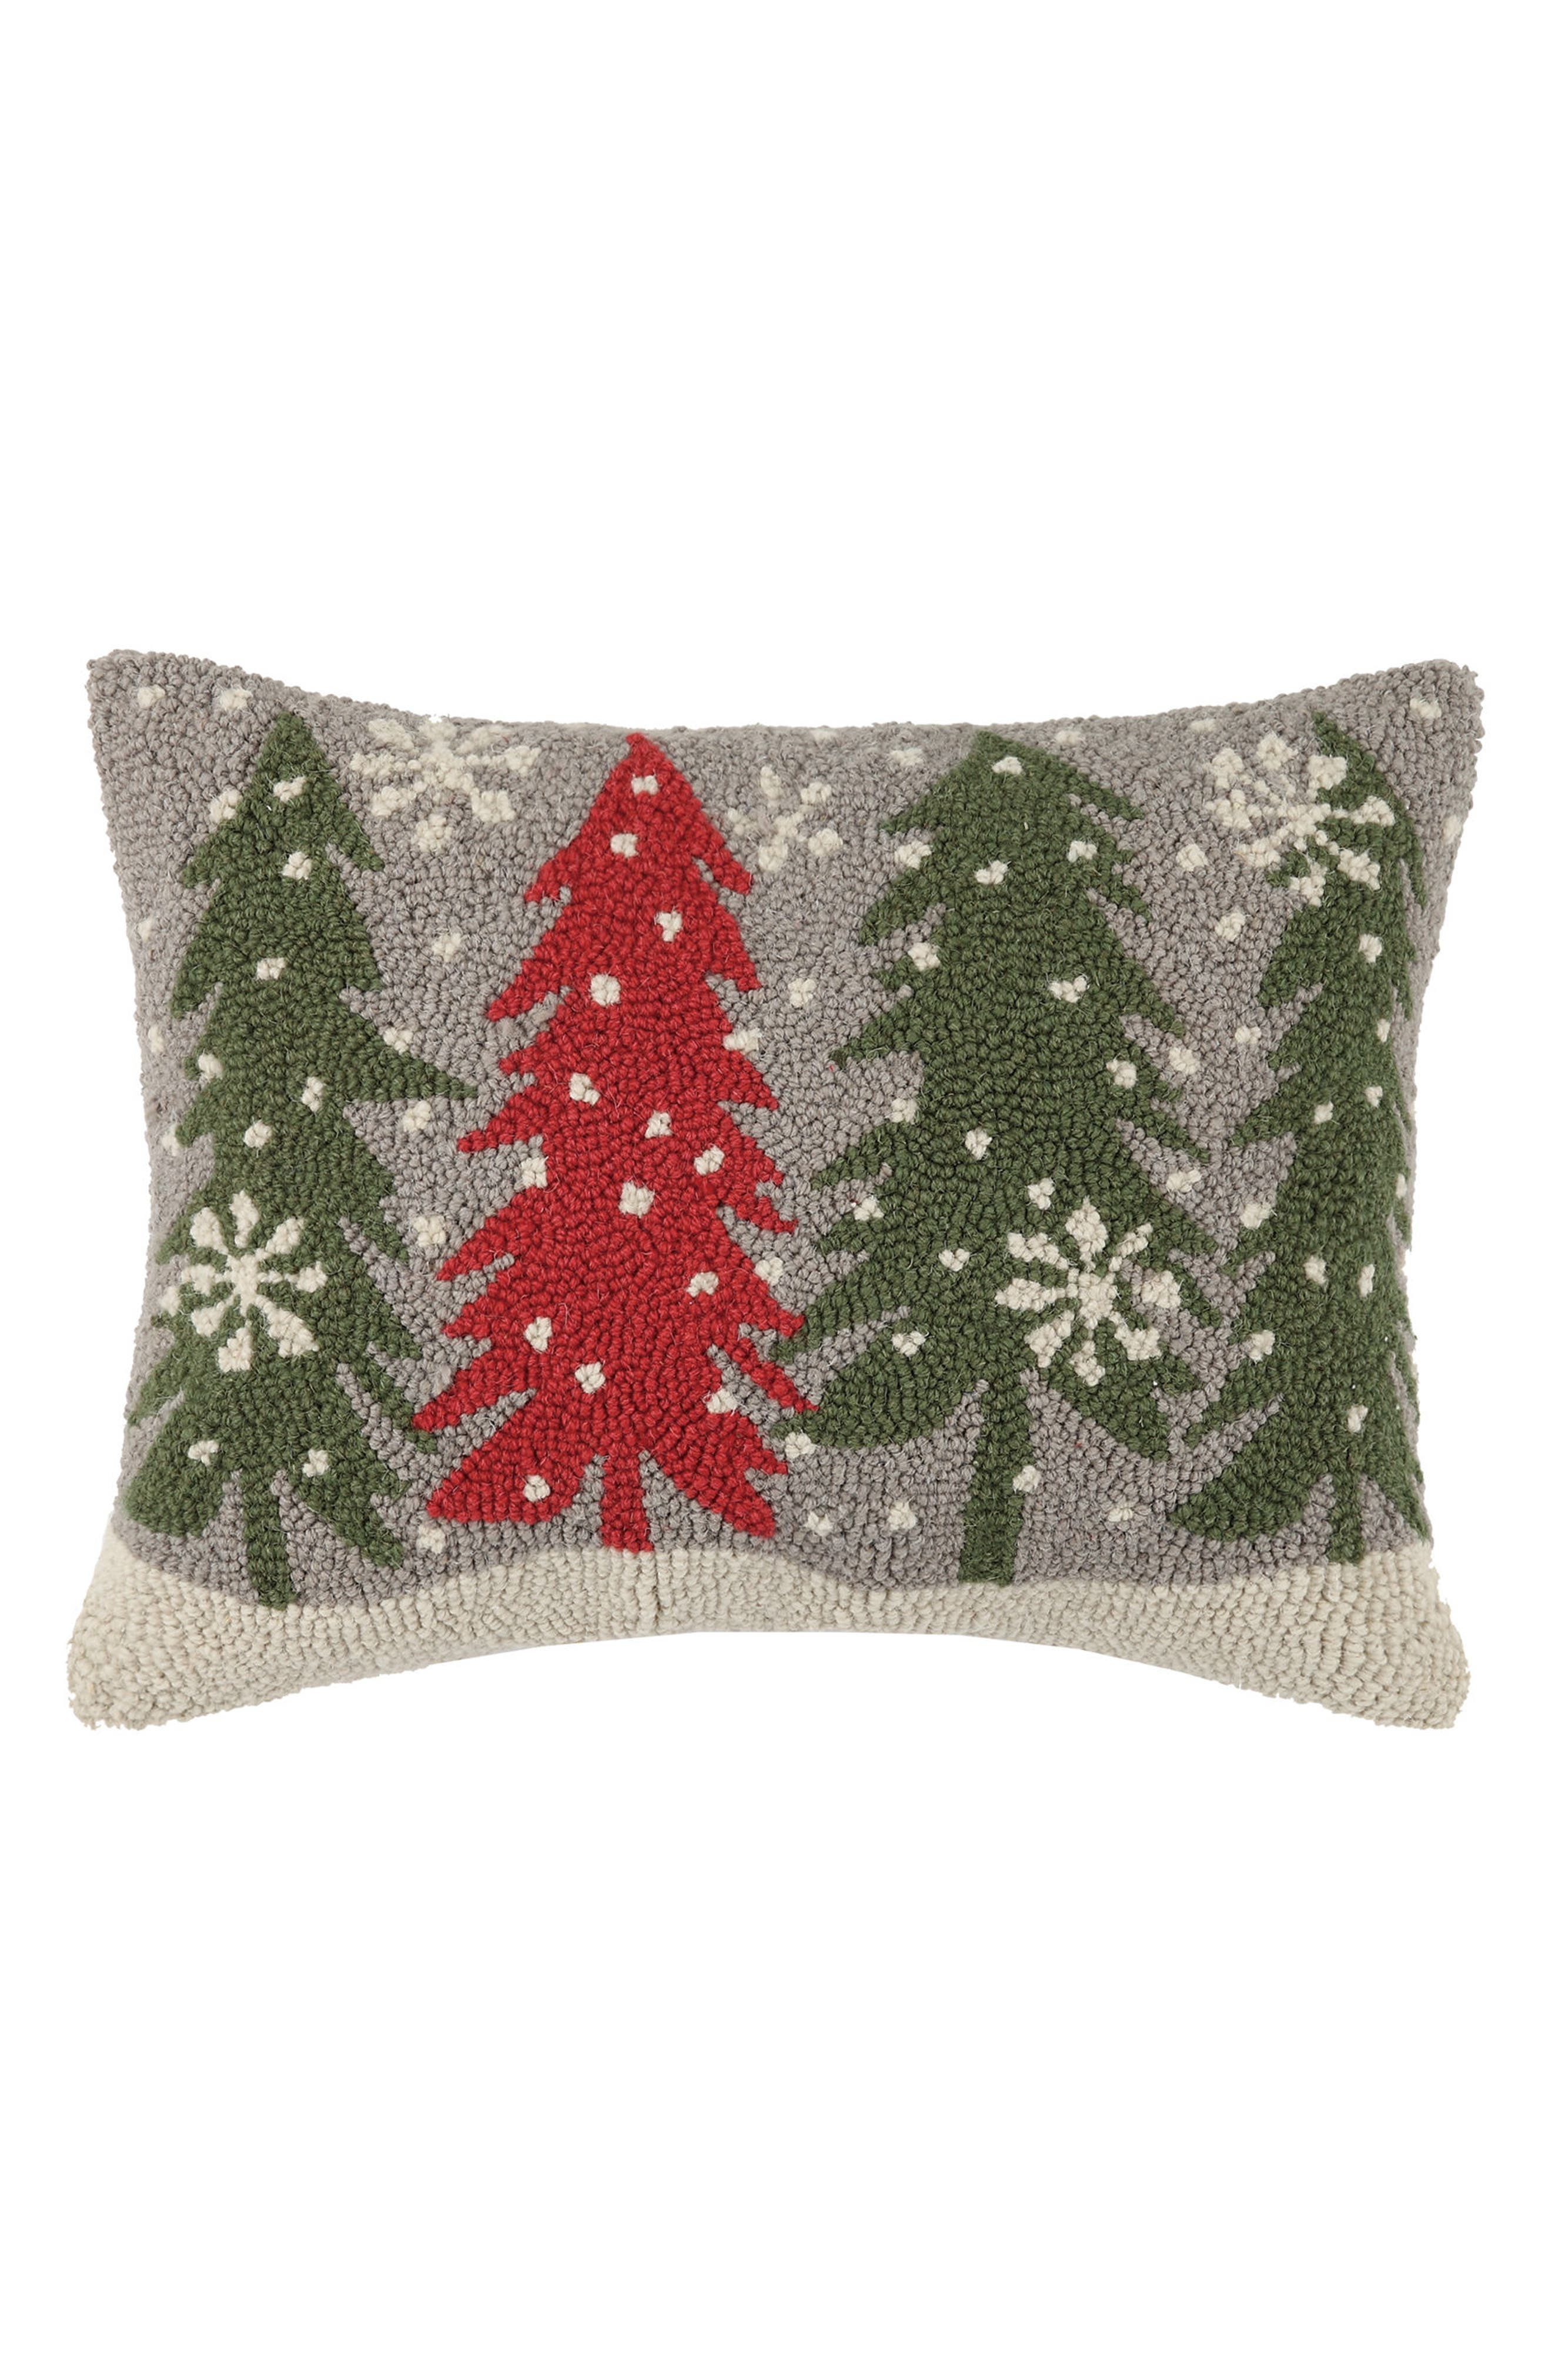 Alternate Image 1 Selected - Peking Handicraft Trees with Snowflakes Hooked Accent Pillow